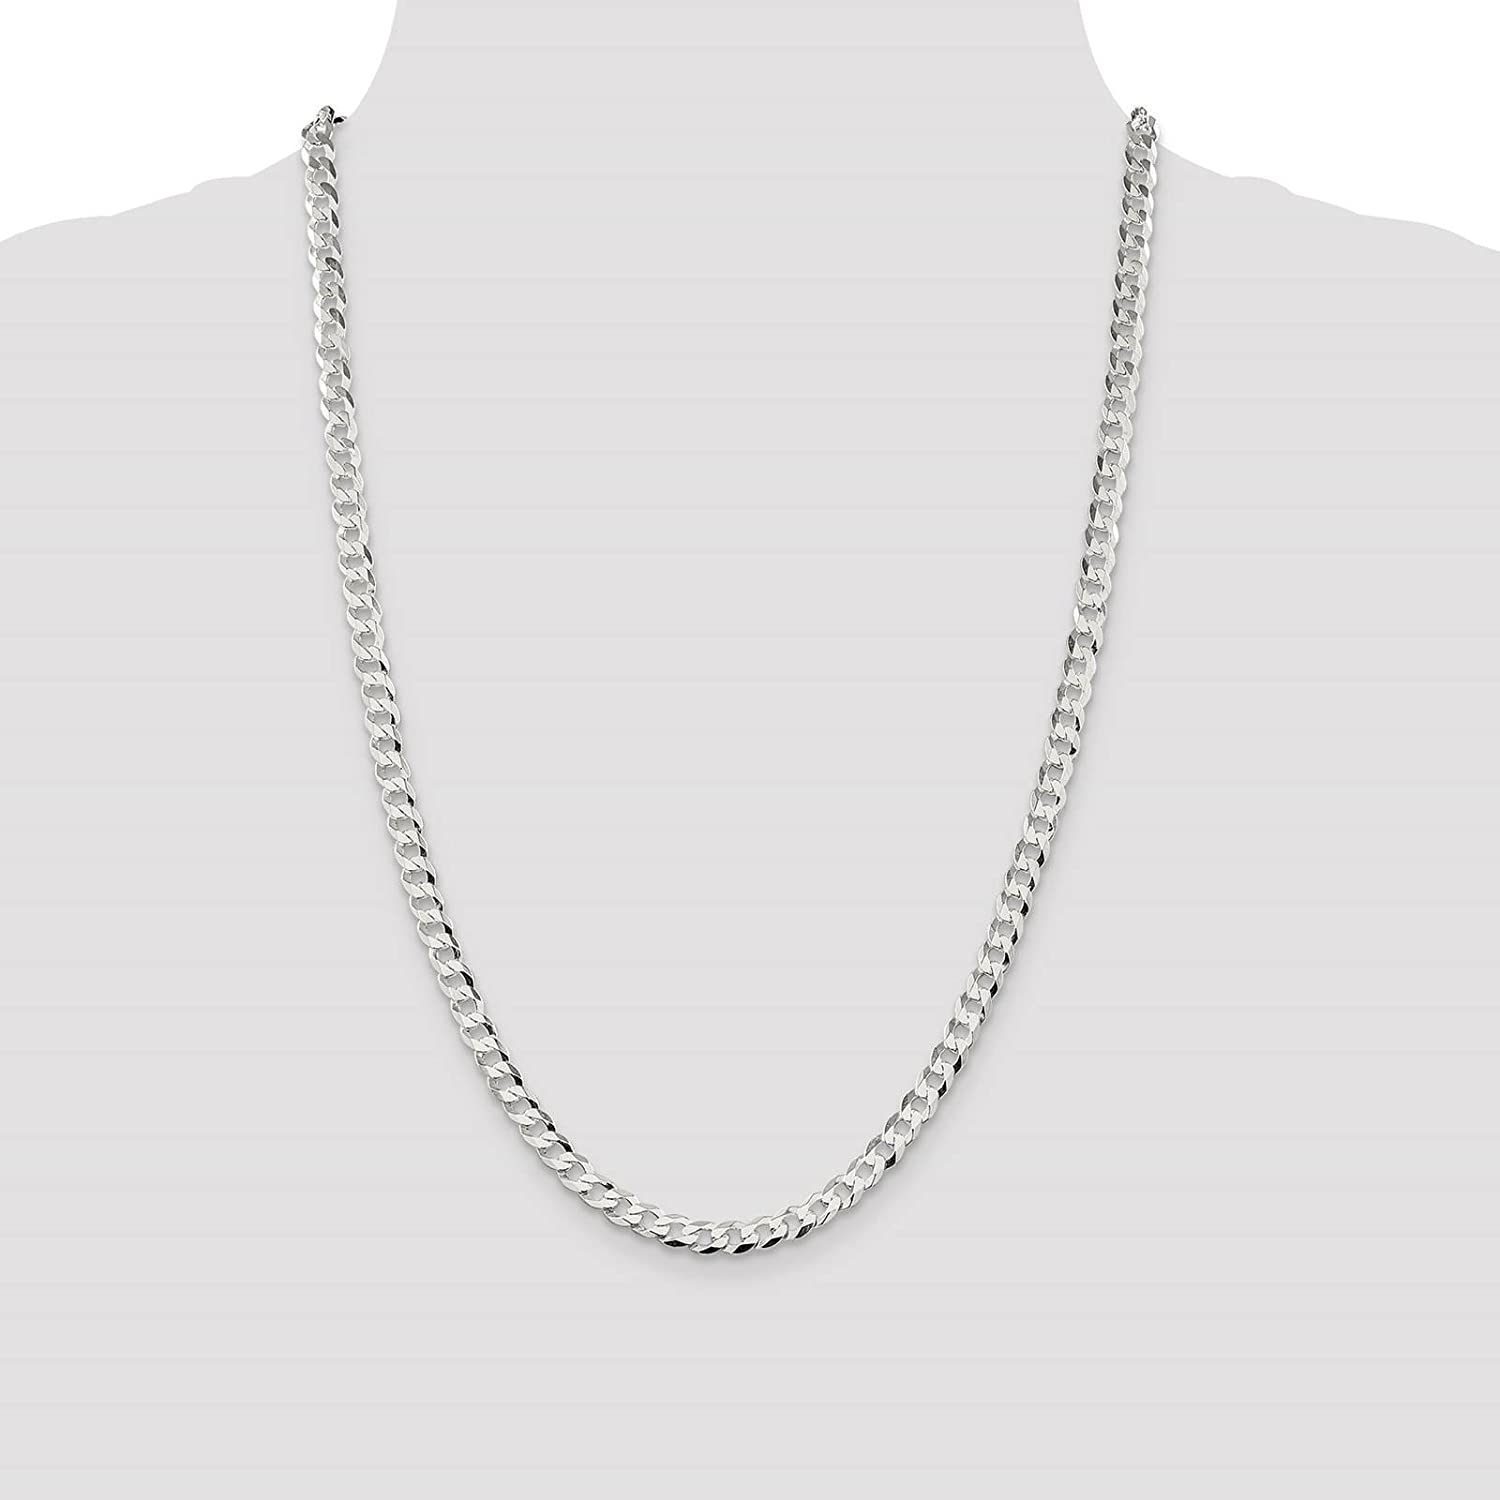 925 Sterling Silver 5.7mm Close Link Flat Curb Link Chain Necklace 7-24